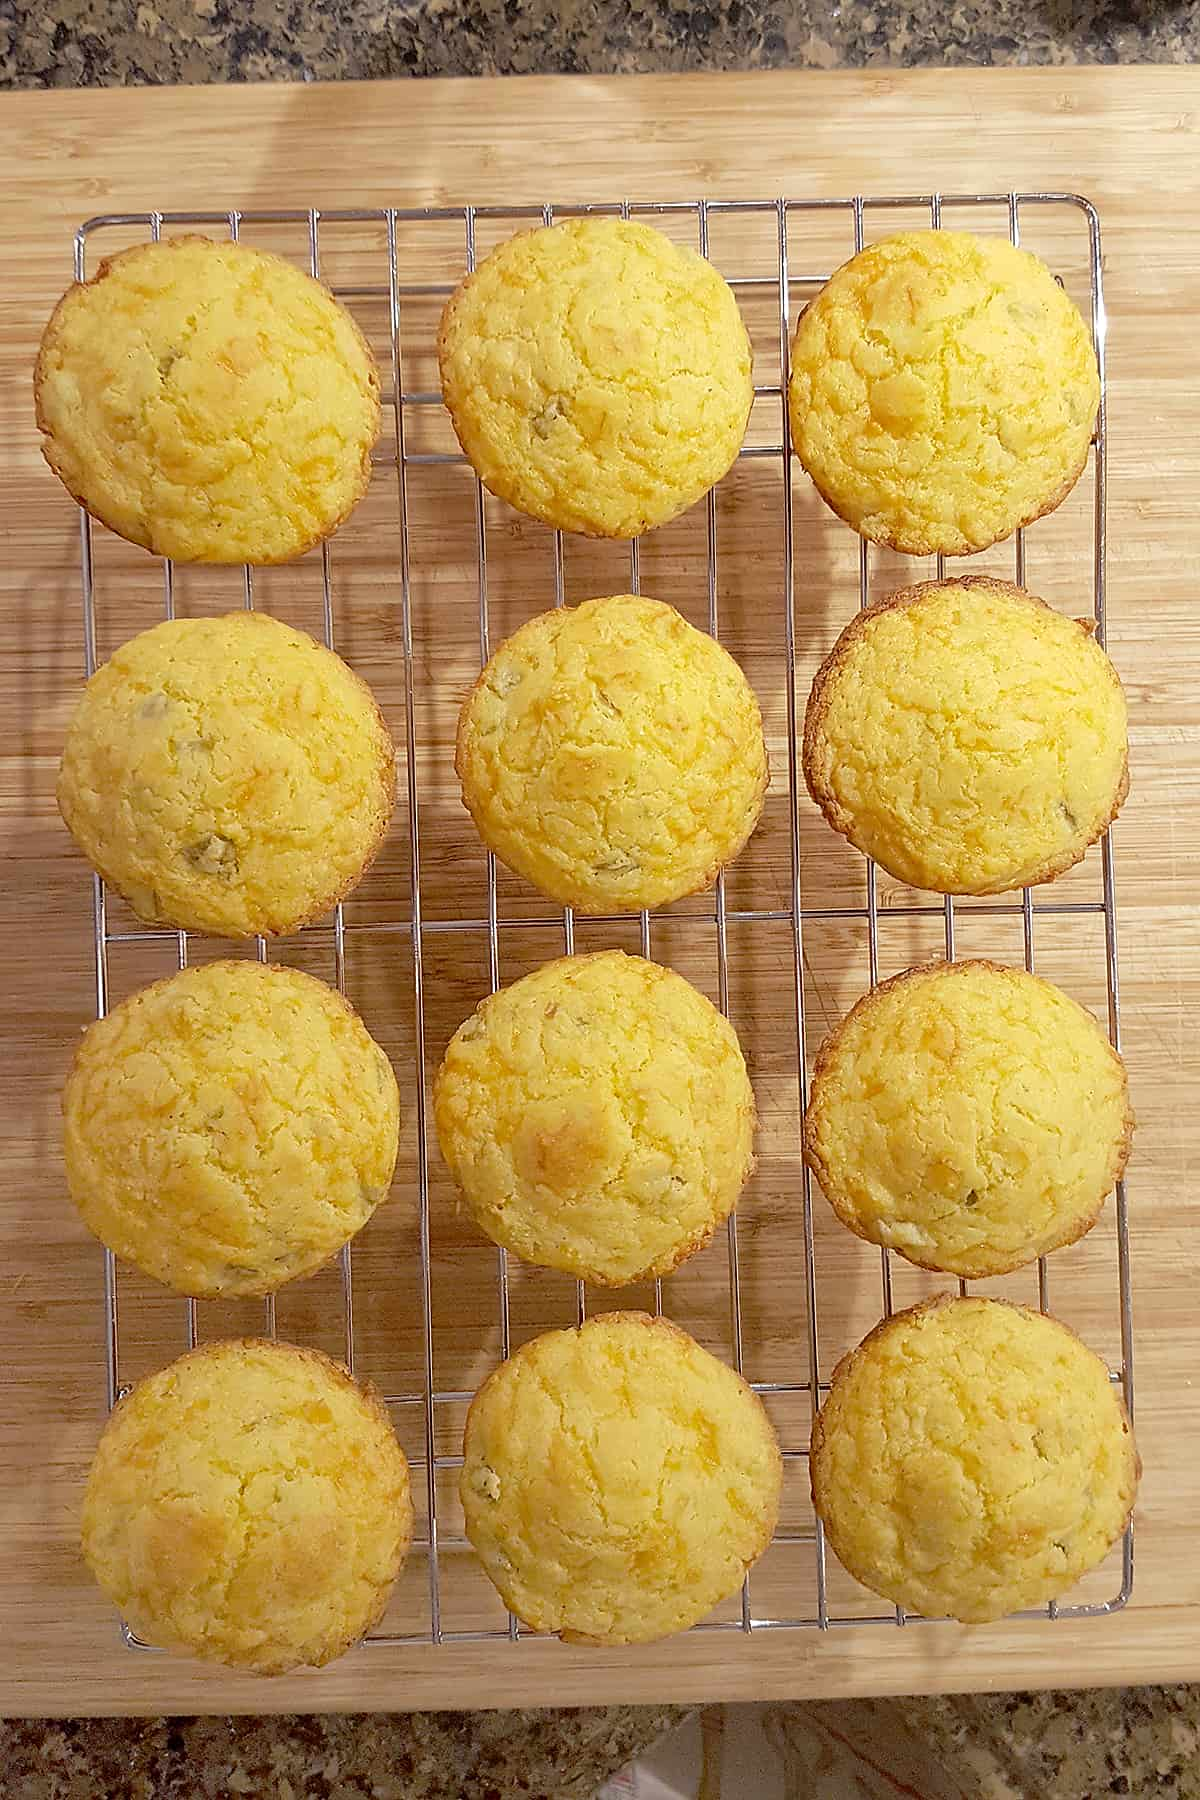 Green Chili Corn Muffins cooling on a wire rack.